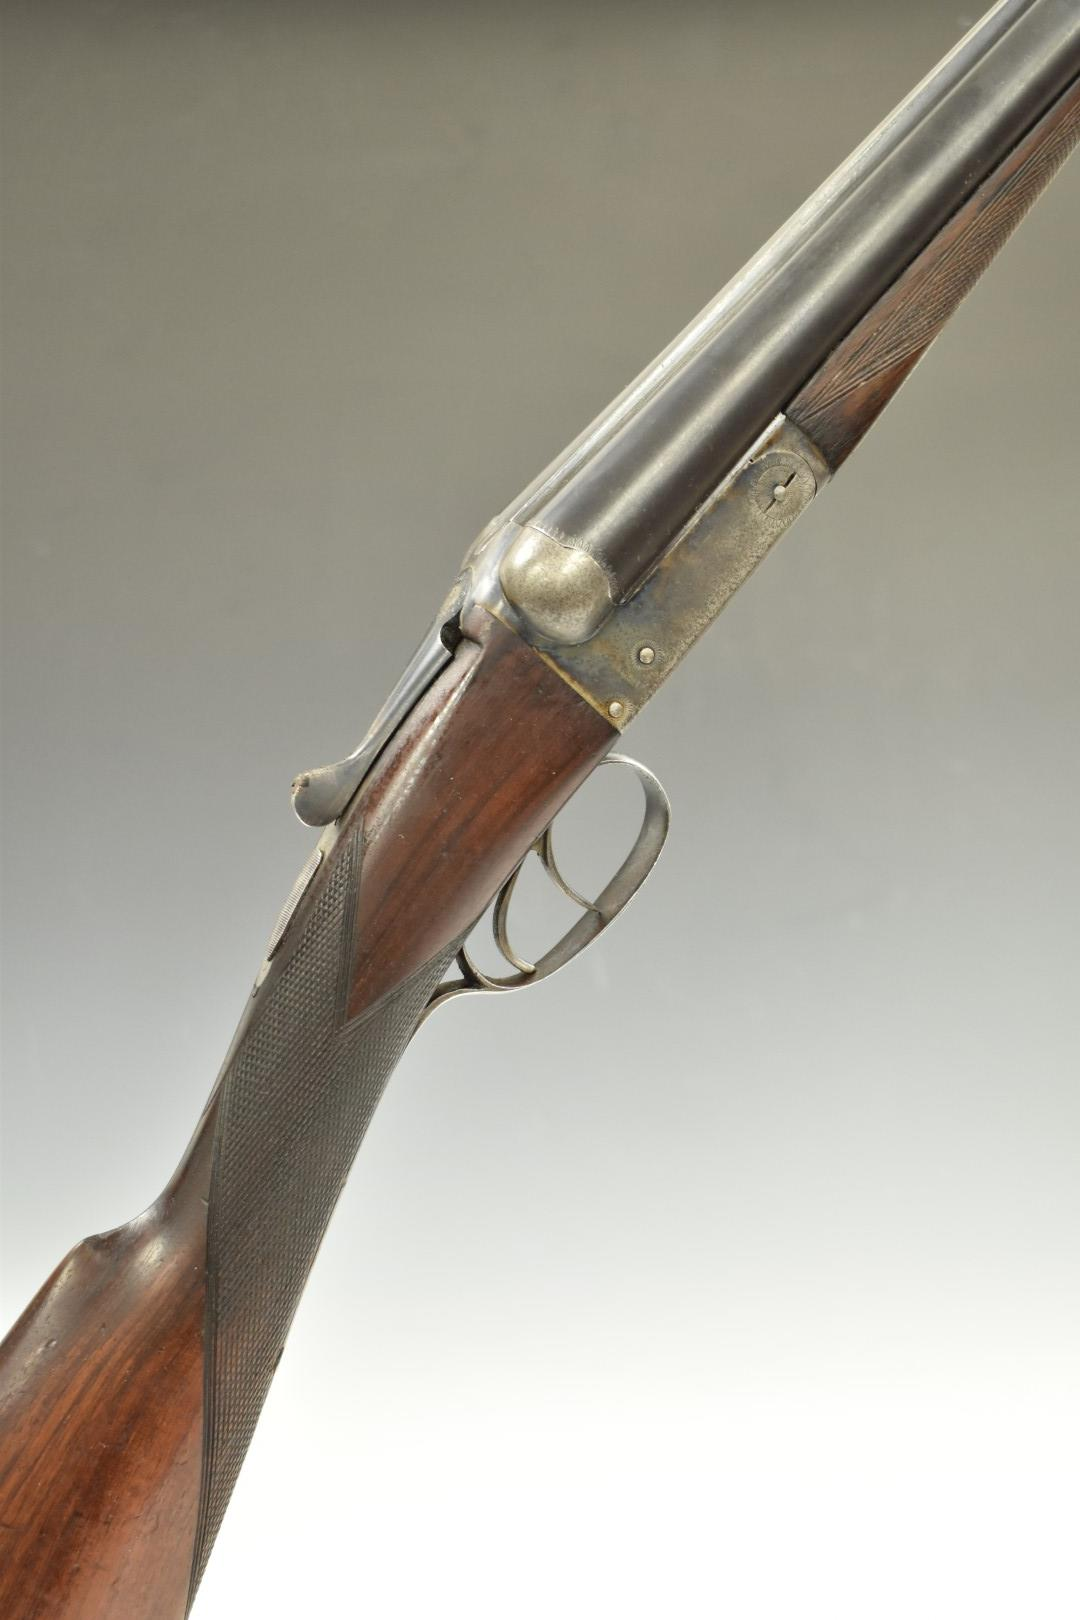 Two 12 bore side by side shotguns, each with engraved locks, trigger guard, underside and thumb